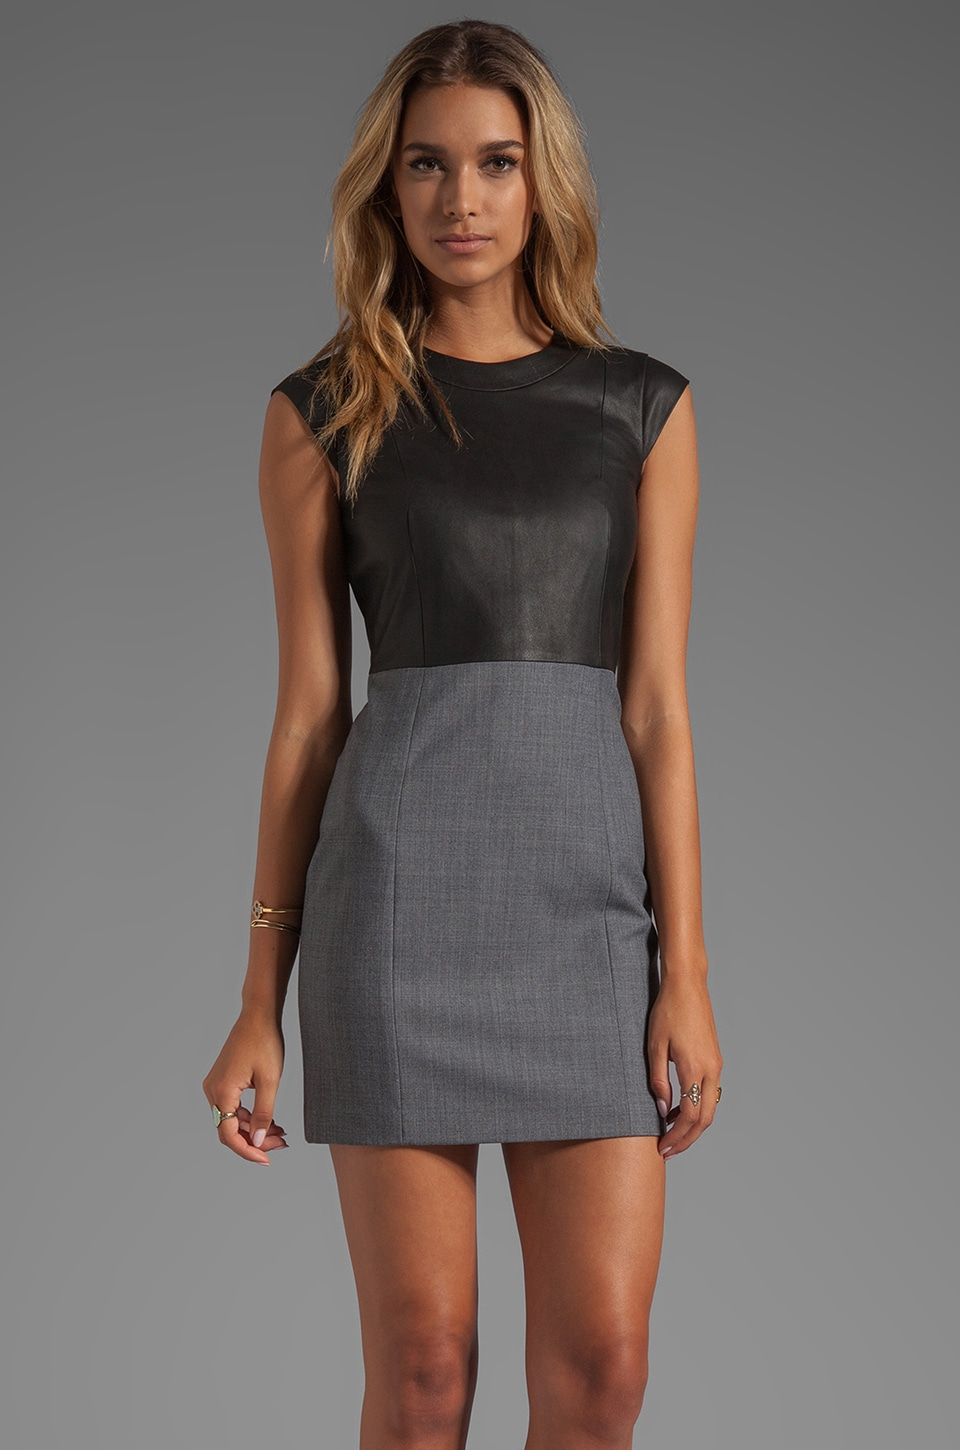 Theory Orinthia C Dress with Leather & Black in Charcoal